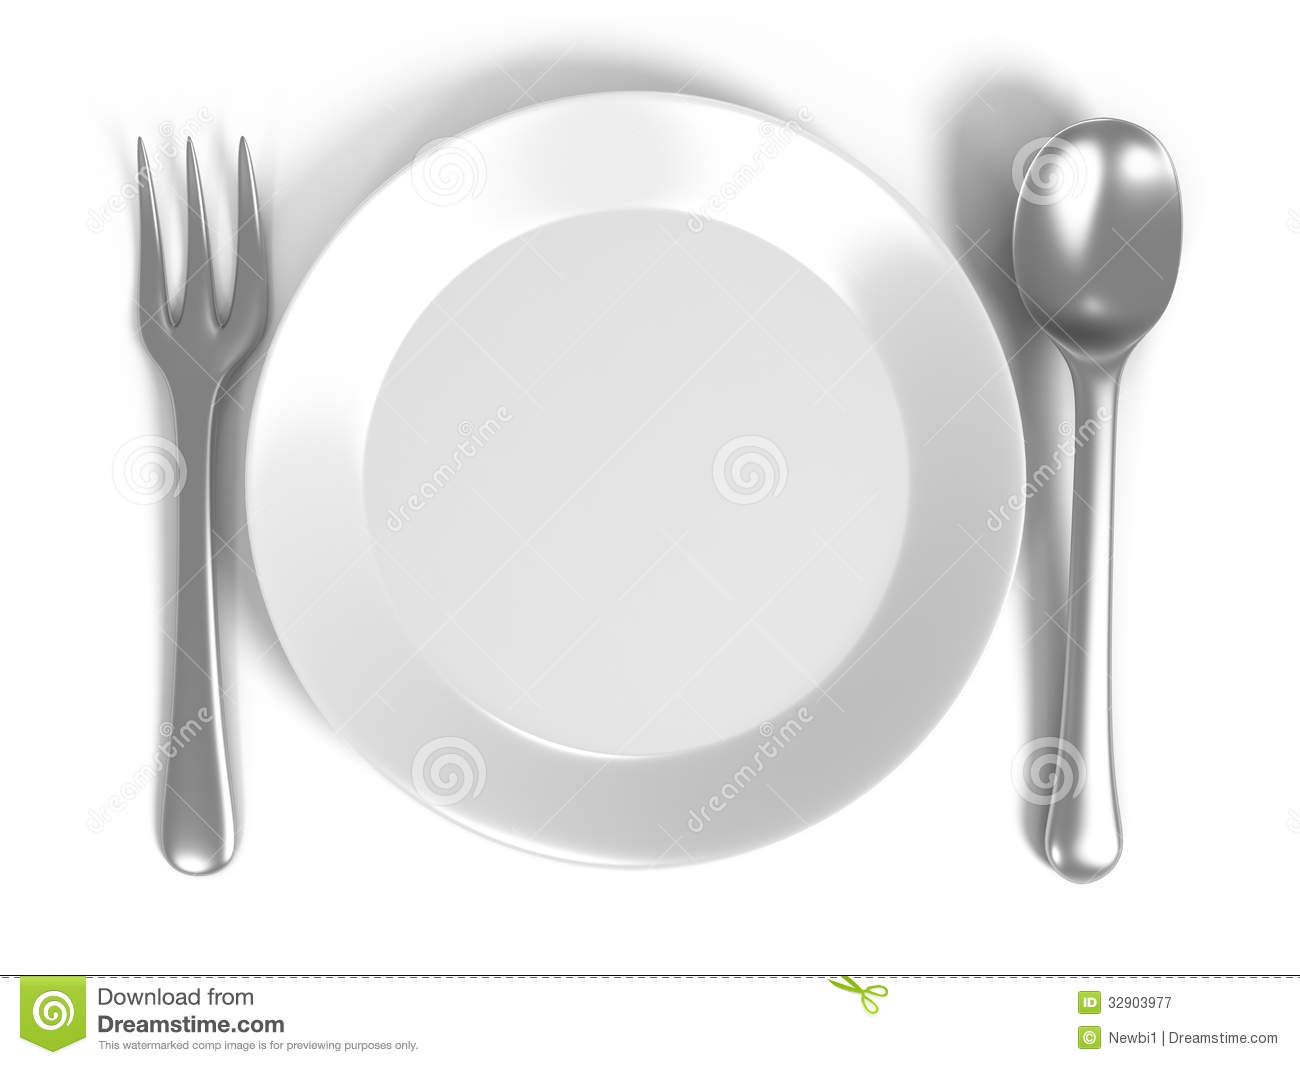 Illustration Of Spoon And Fork On Plate Stock Illustration